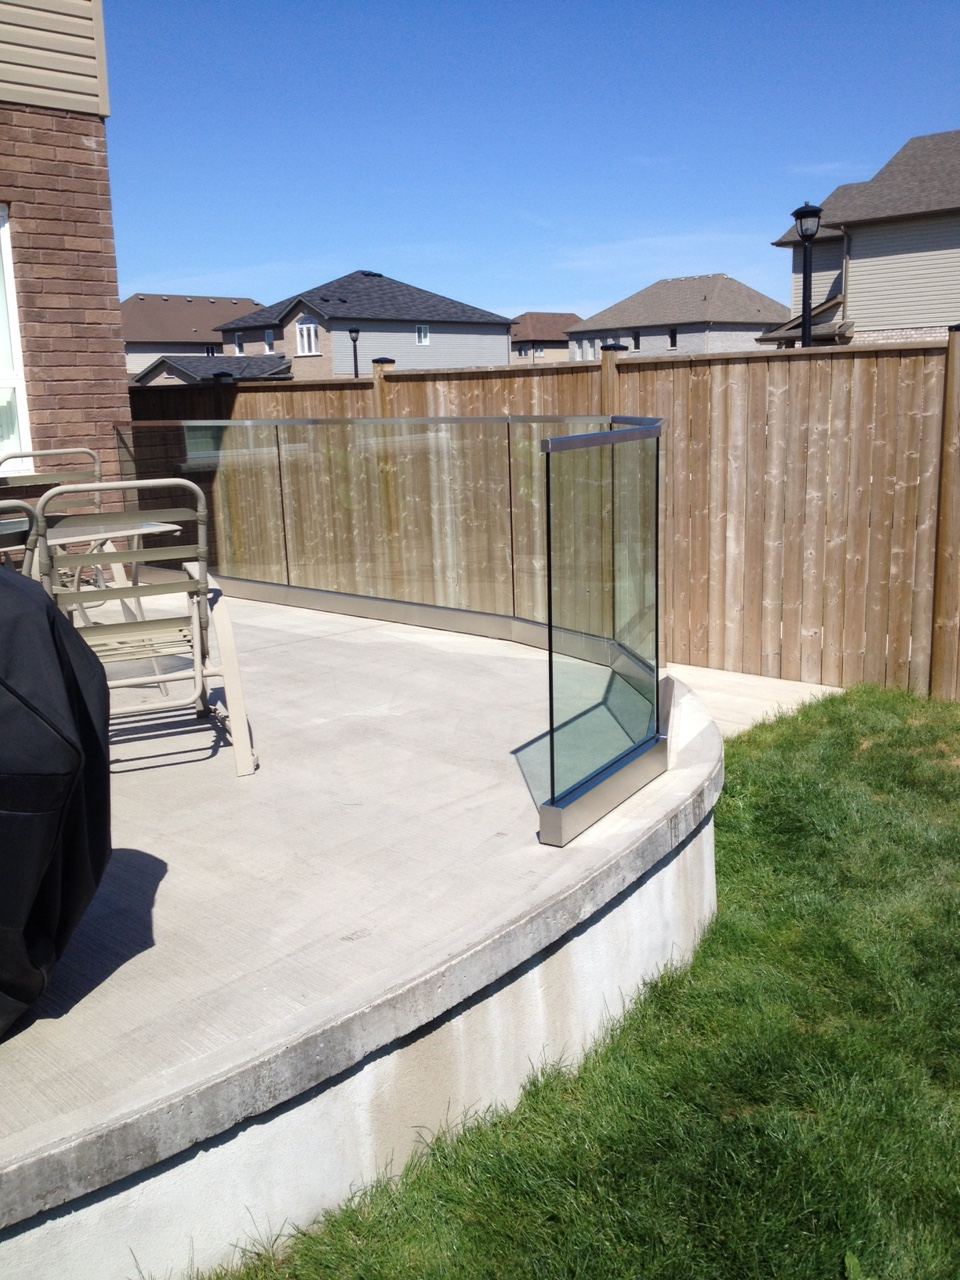 curved glass railngs on deck